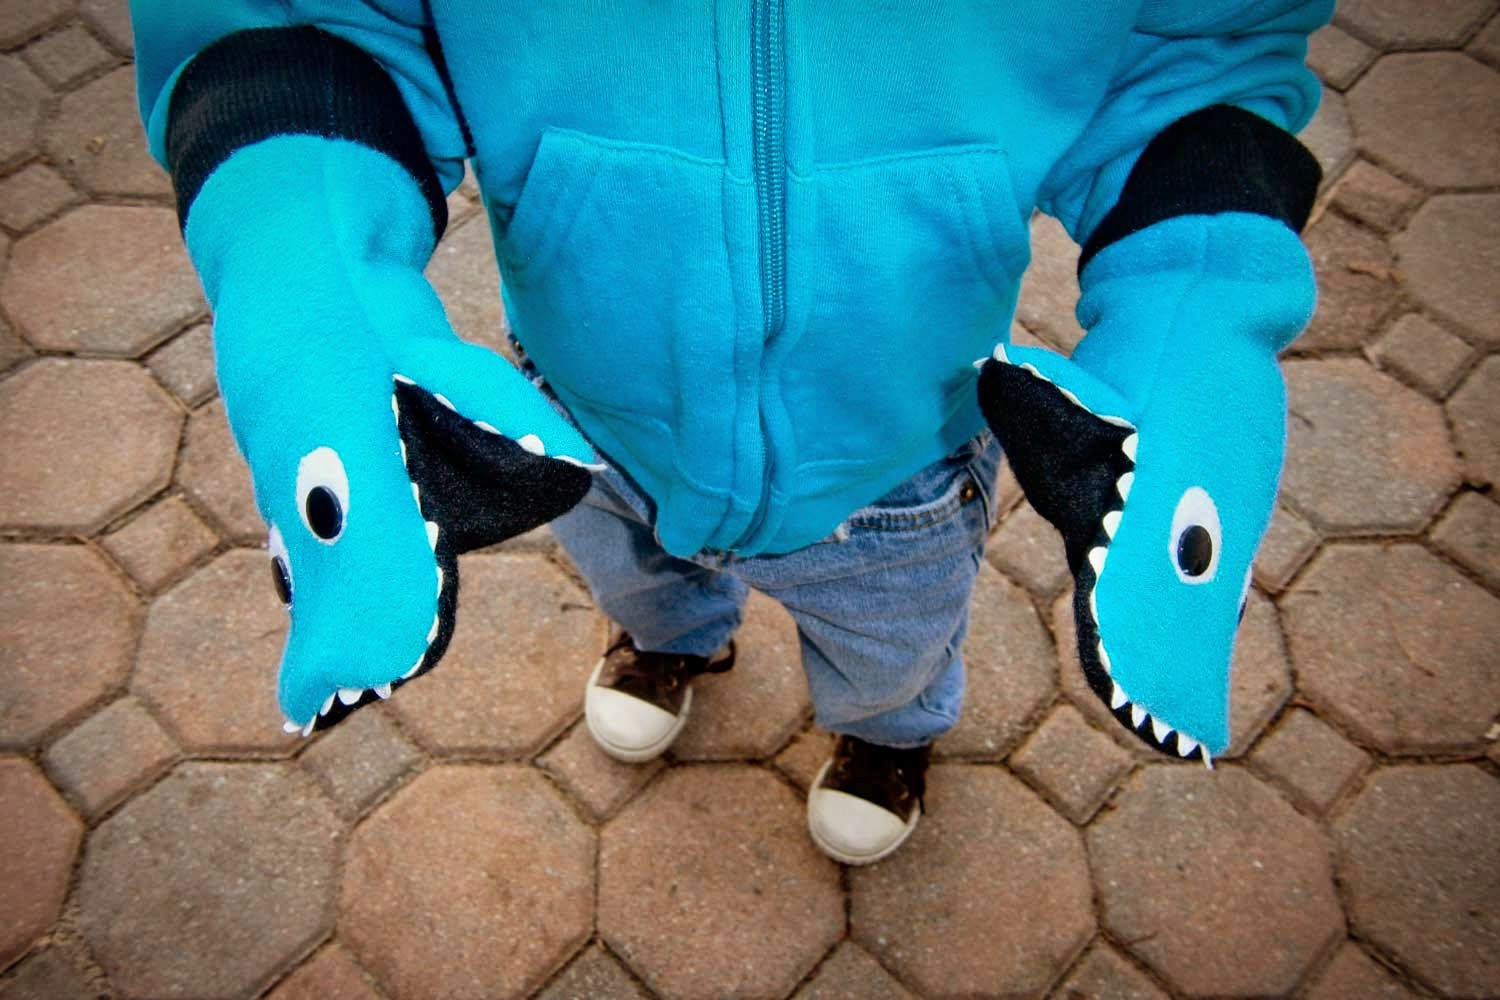 Cool! Shark gloves - from Instructables